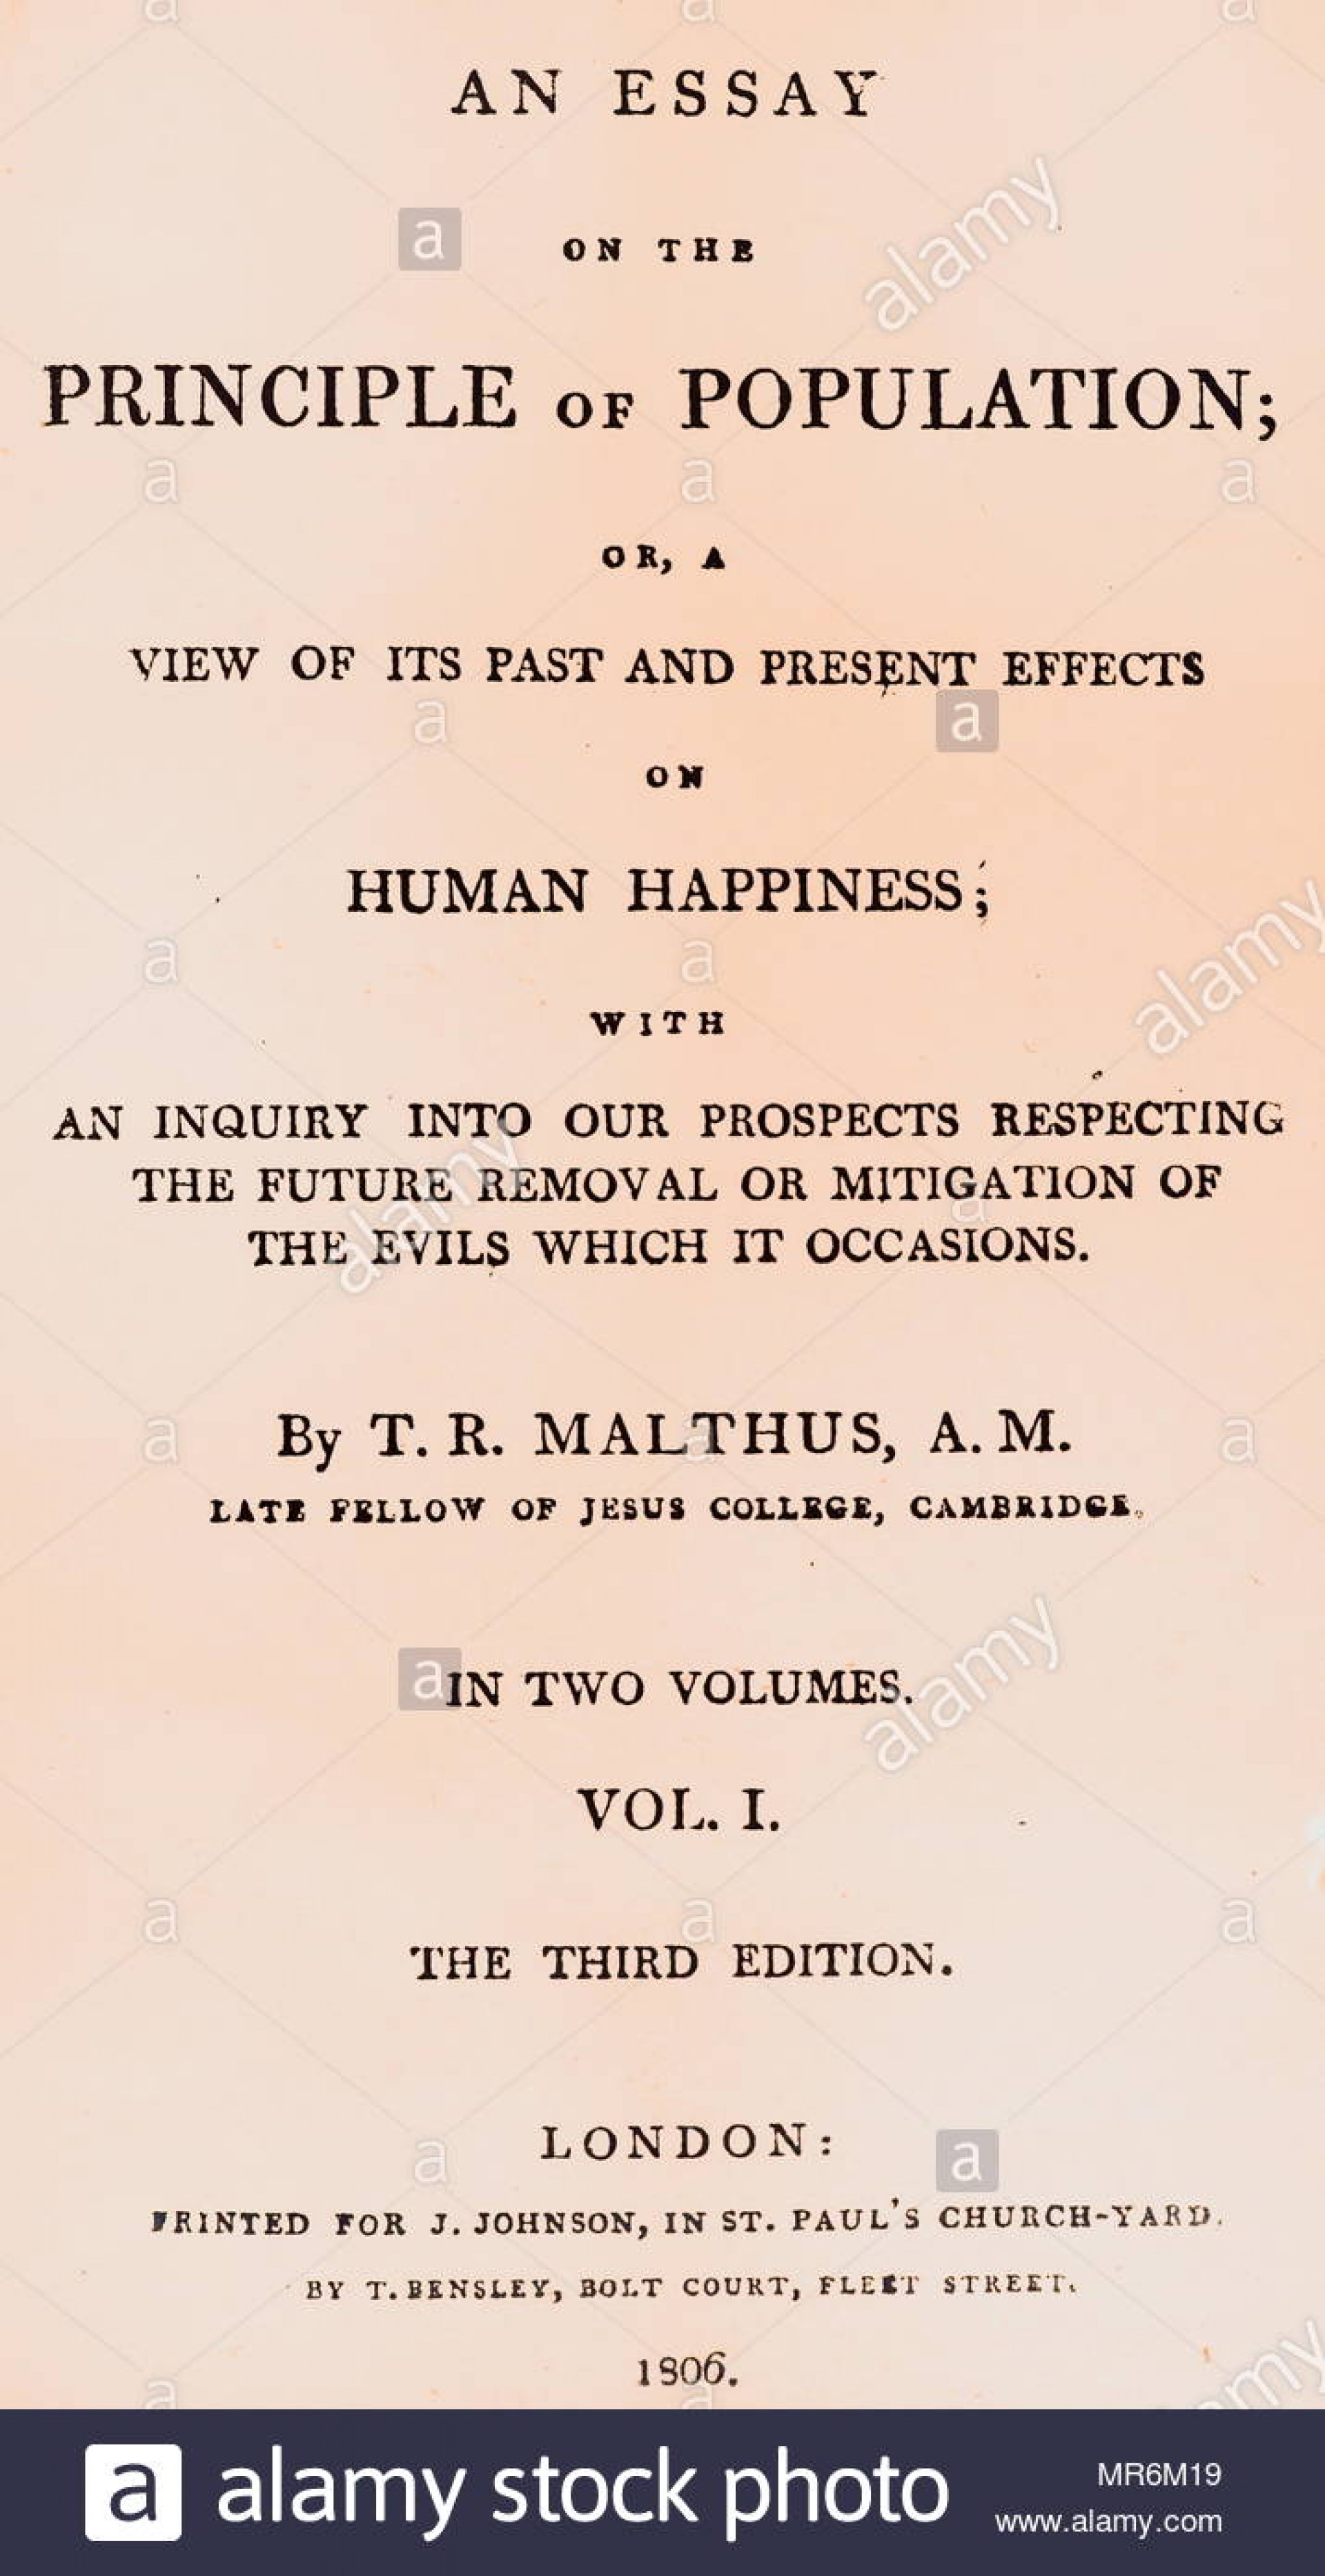 015 Essay Example Thomas Malthus On The Principle Of Population Title Page Written By Robert An English Cleric And Stupendous After Reading Malthus's Principles Darwin Got Idea That Ap Euro 1920